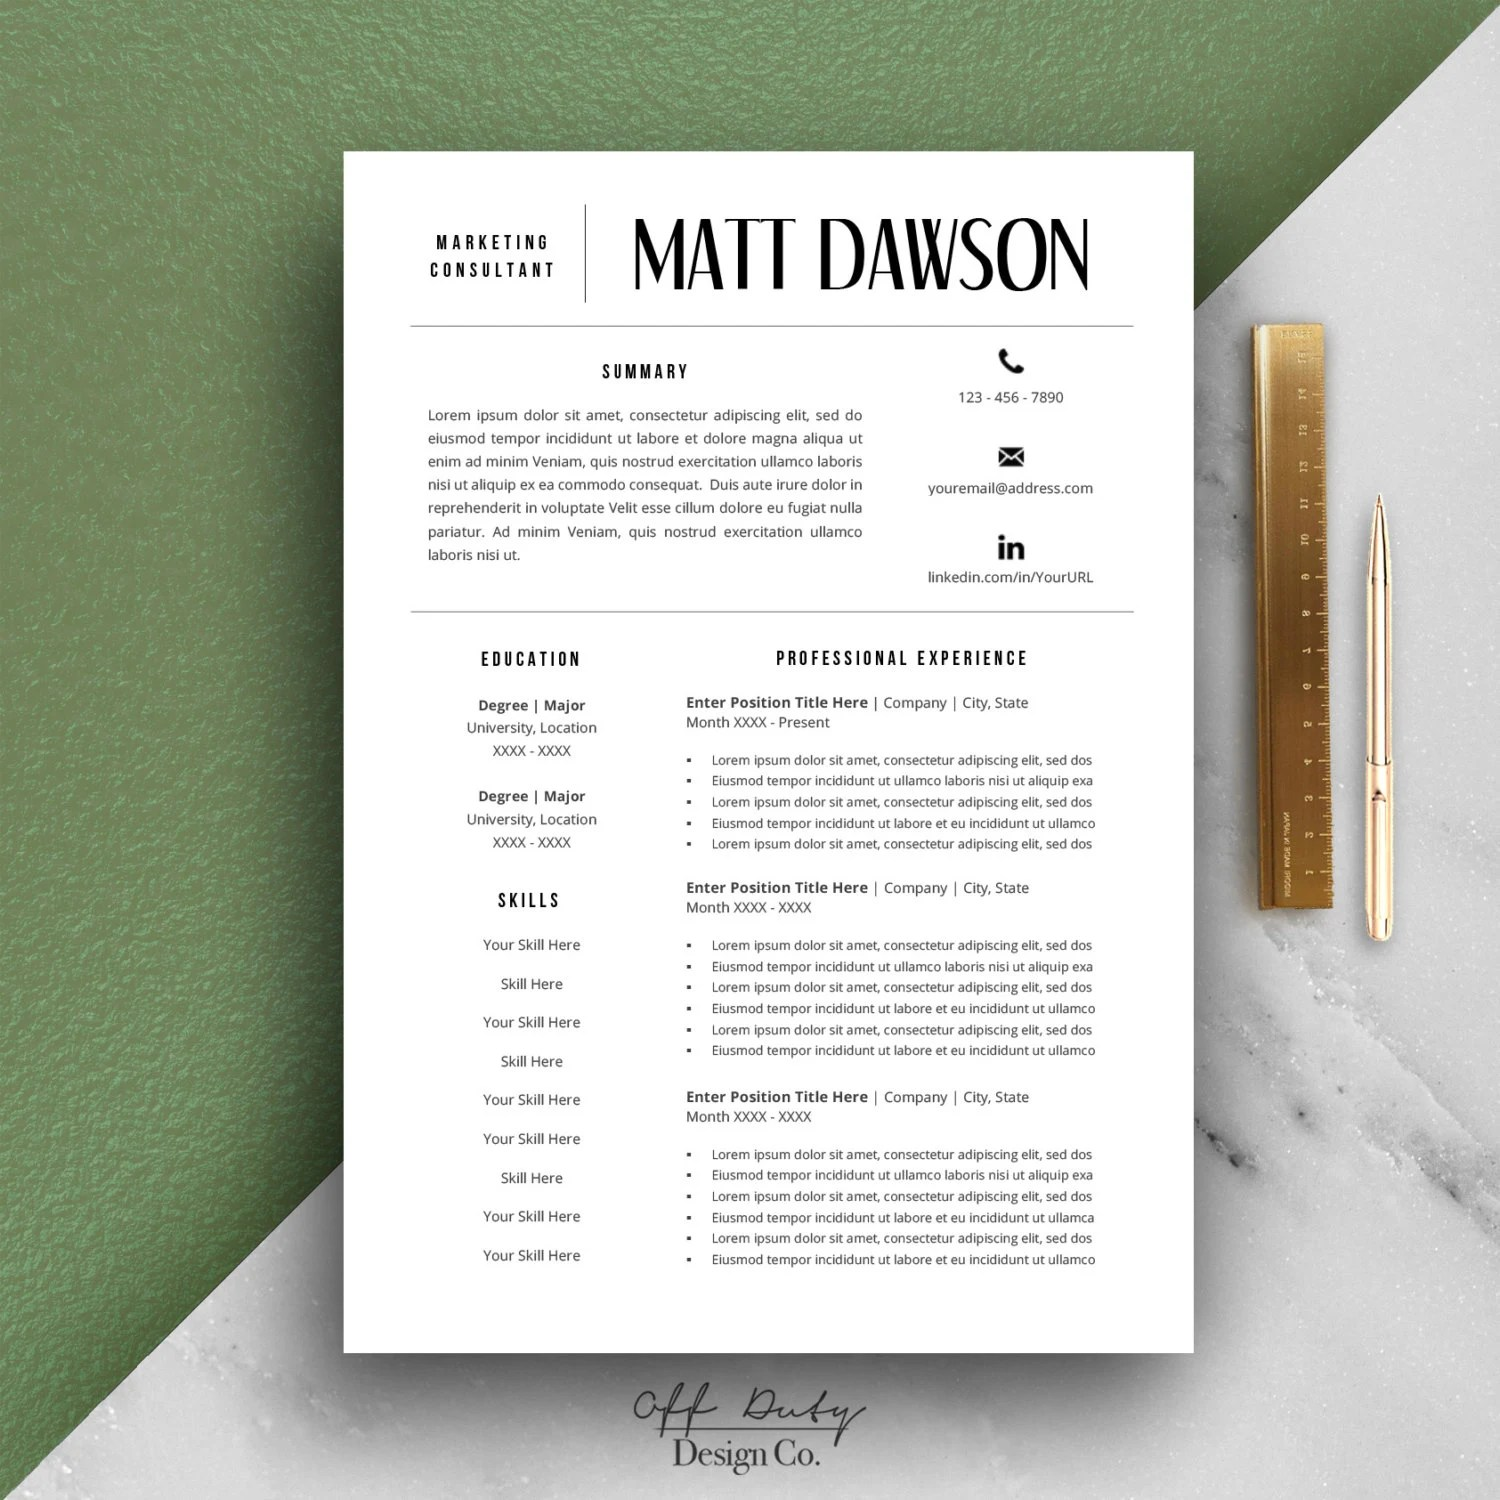 high school resume template naples high school airport guides flight tracking status airport parking menswear sales - Naples High School Resume Template